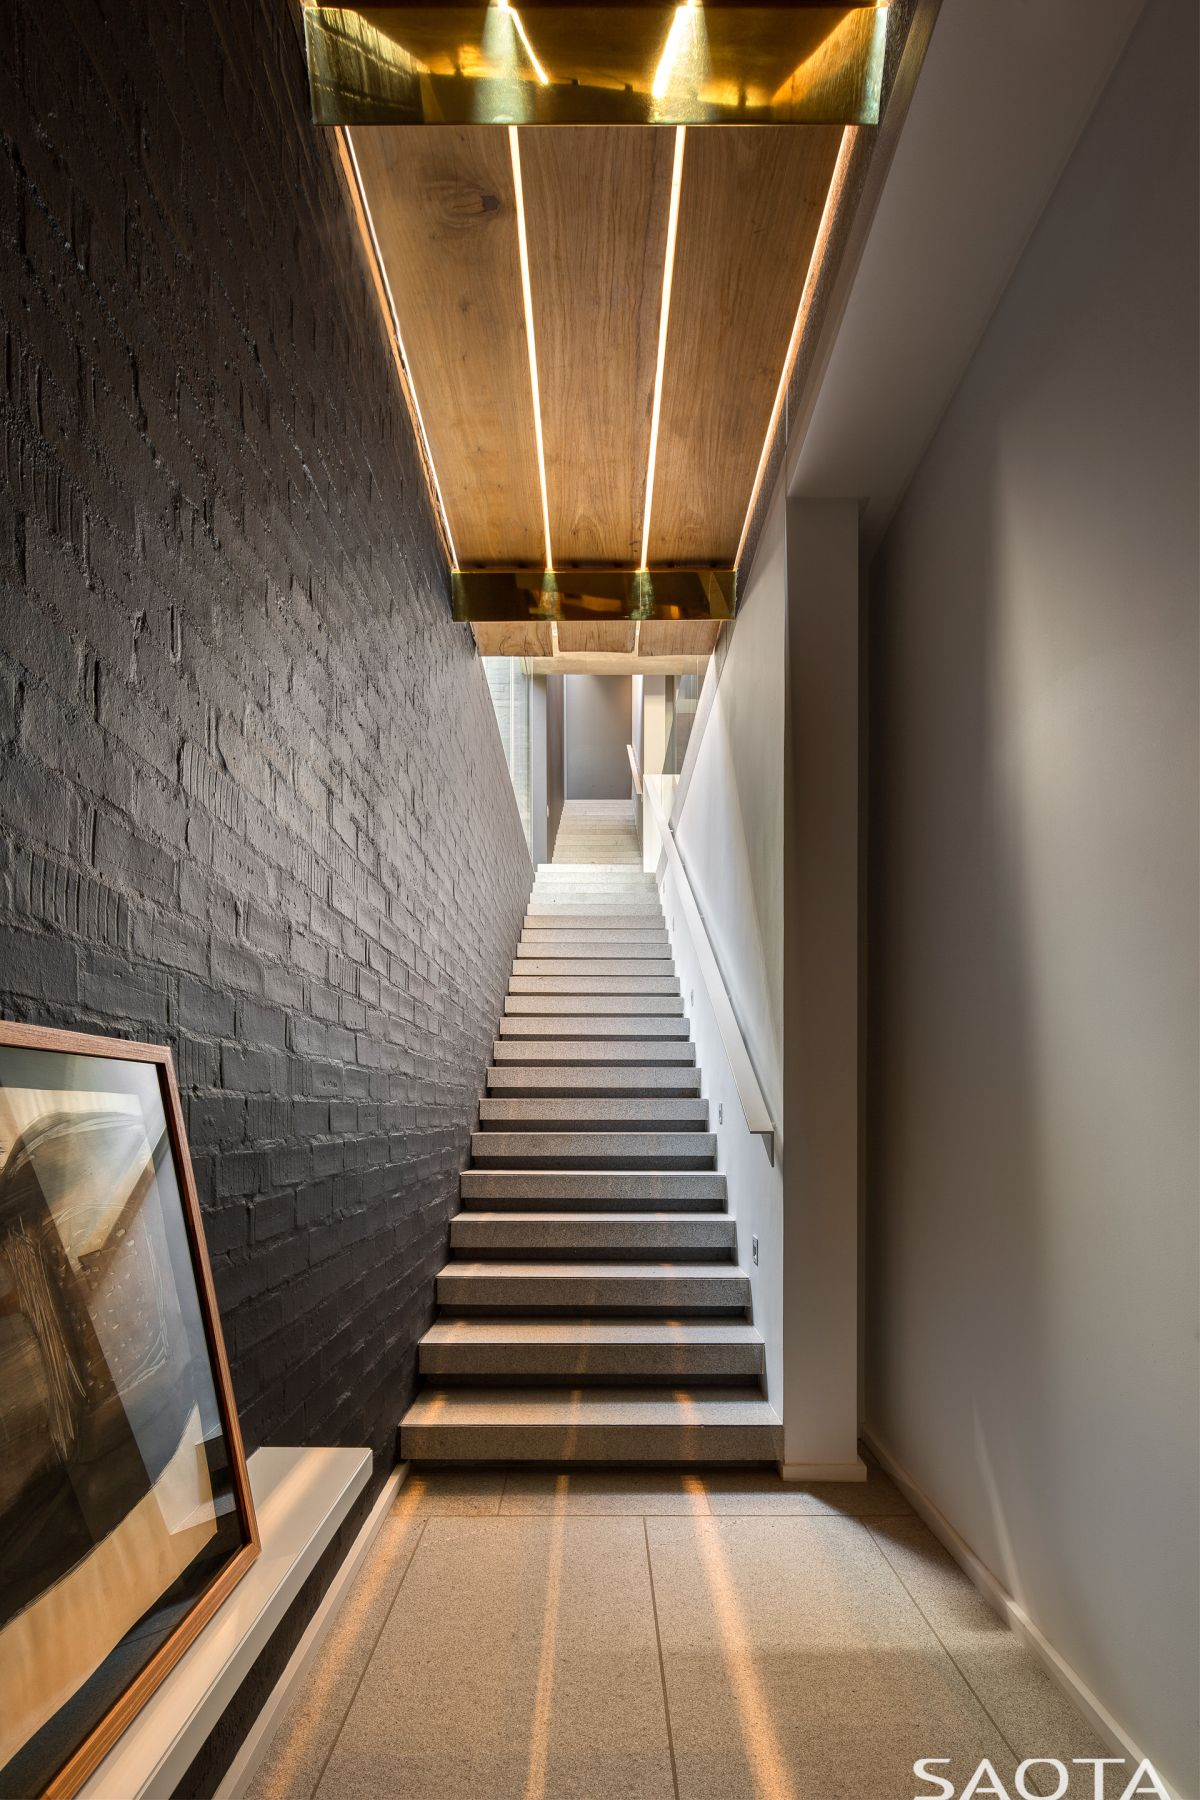 The lighting throughout the house is perfectly on point, highlight the best design features in every space